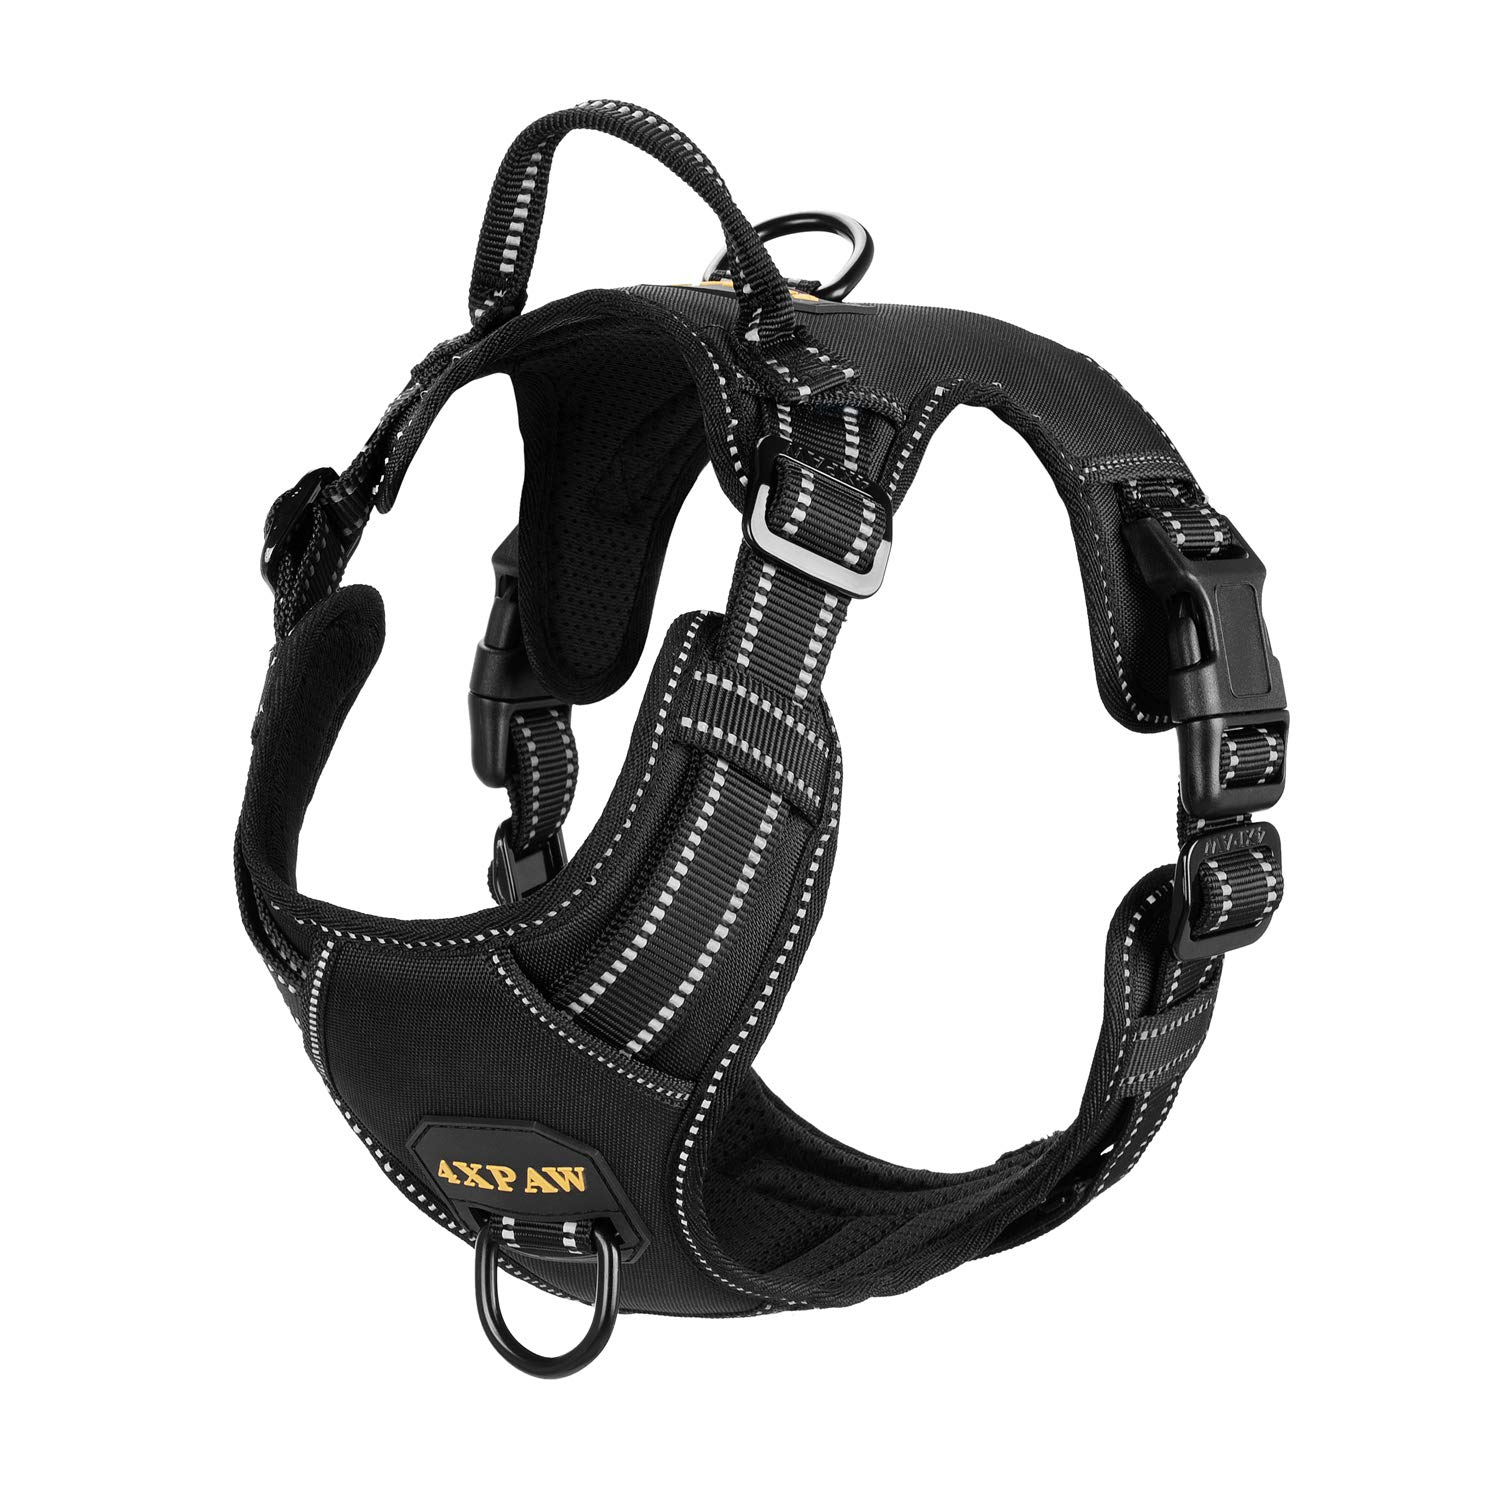 4XPAW Dog Harness with Padded Handle,Reflective in Night,Nylon Oxford Mesh Soft Padding Lining, No-Pull Metal D Ring…